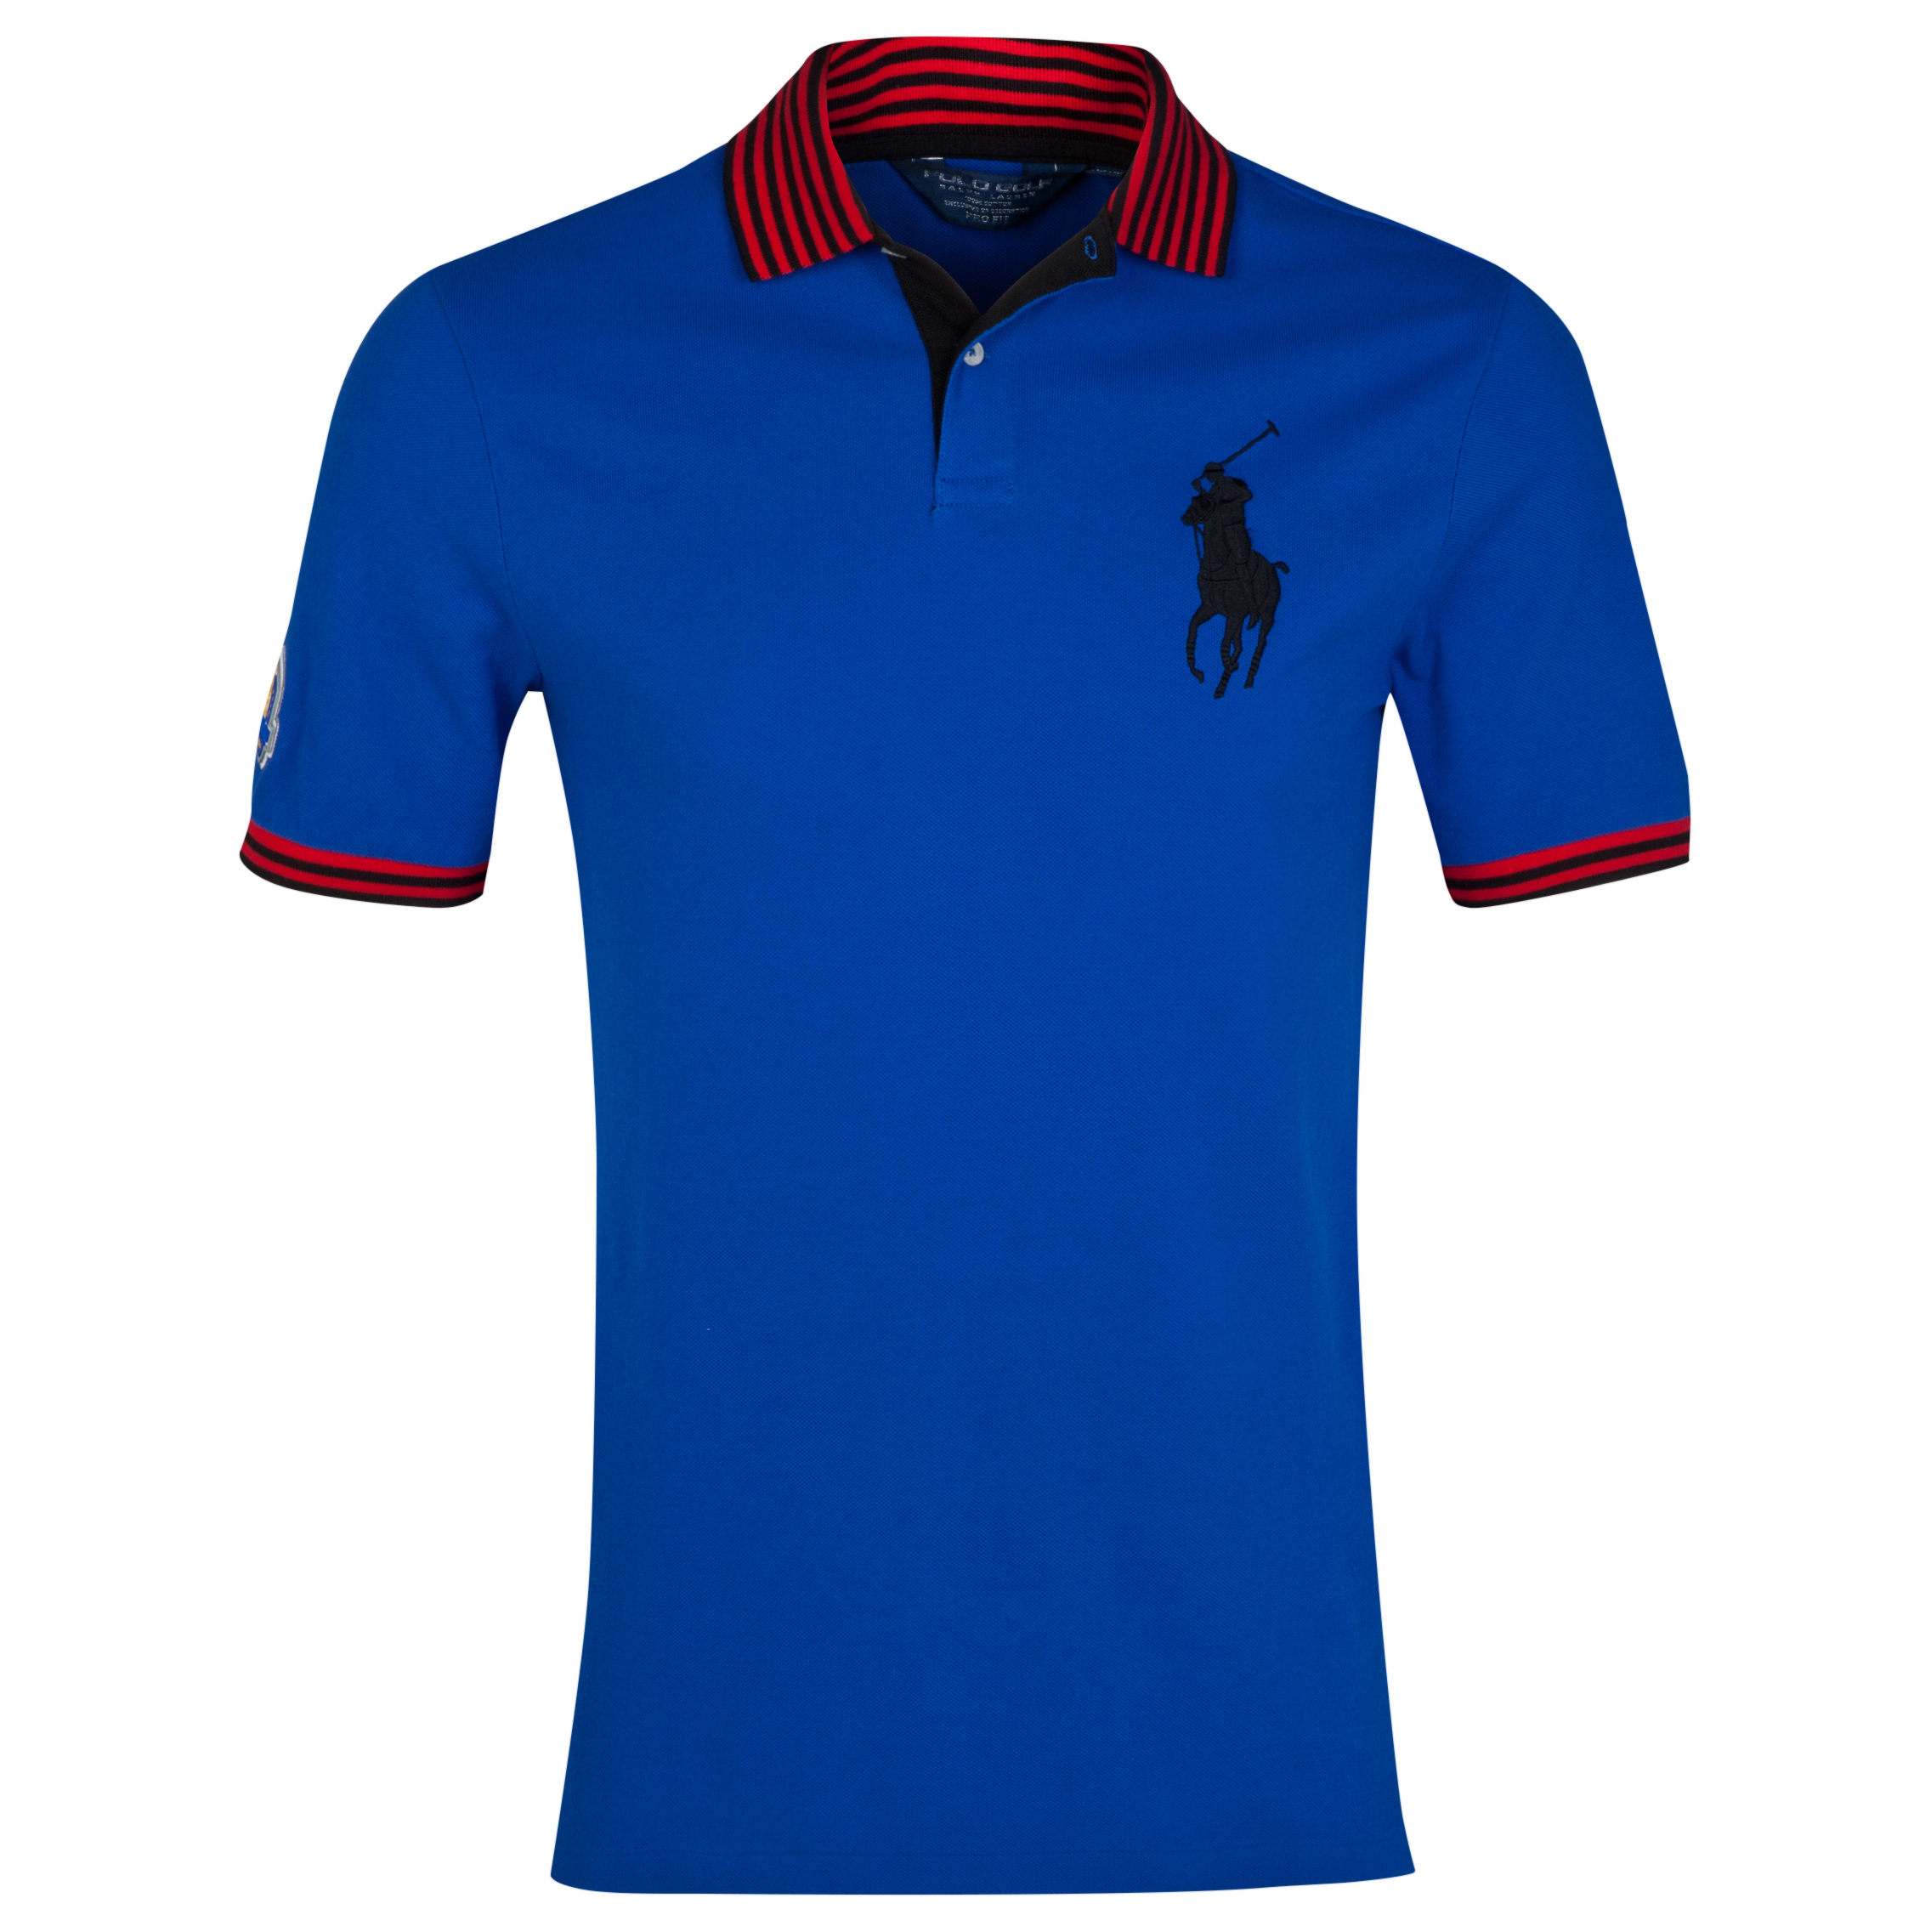 The 2014 Ryder Cup Ralph Lauren Big Pony Contrast Collar Polo Royal Blue